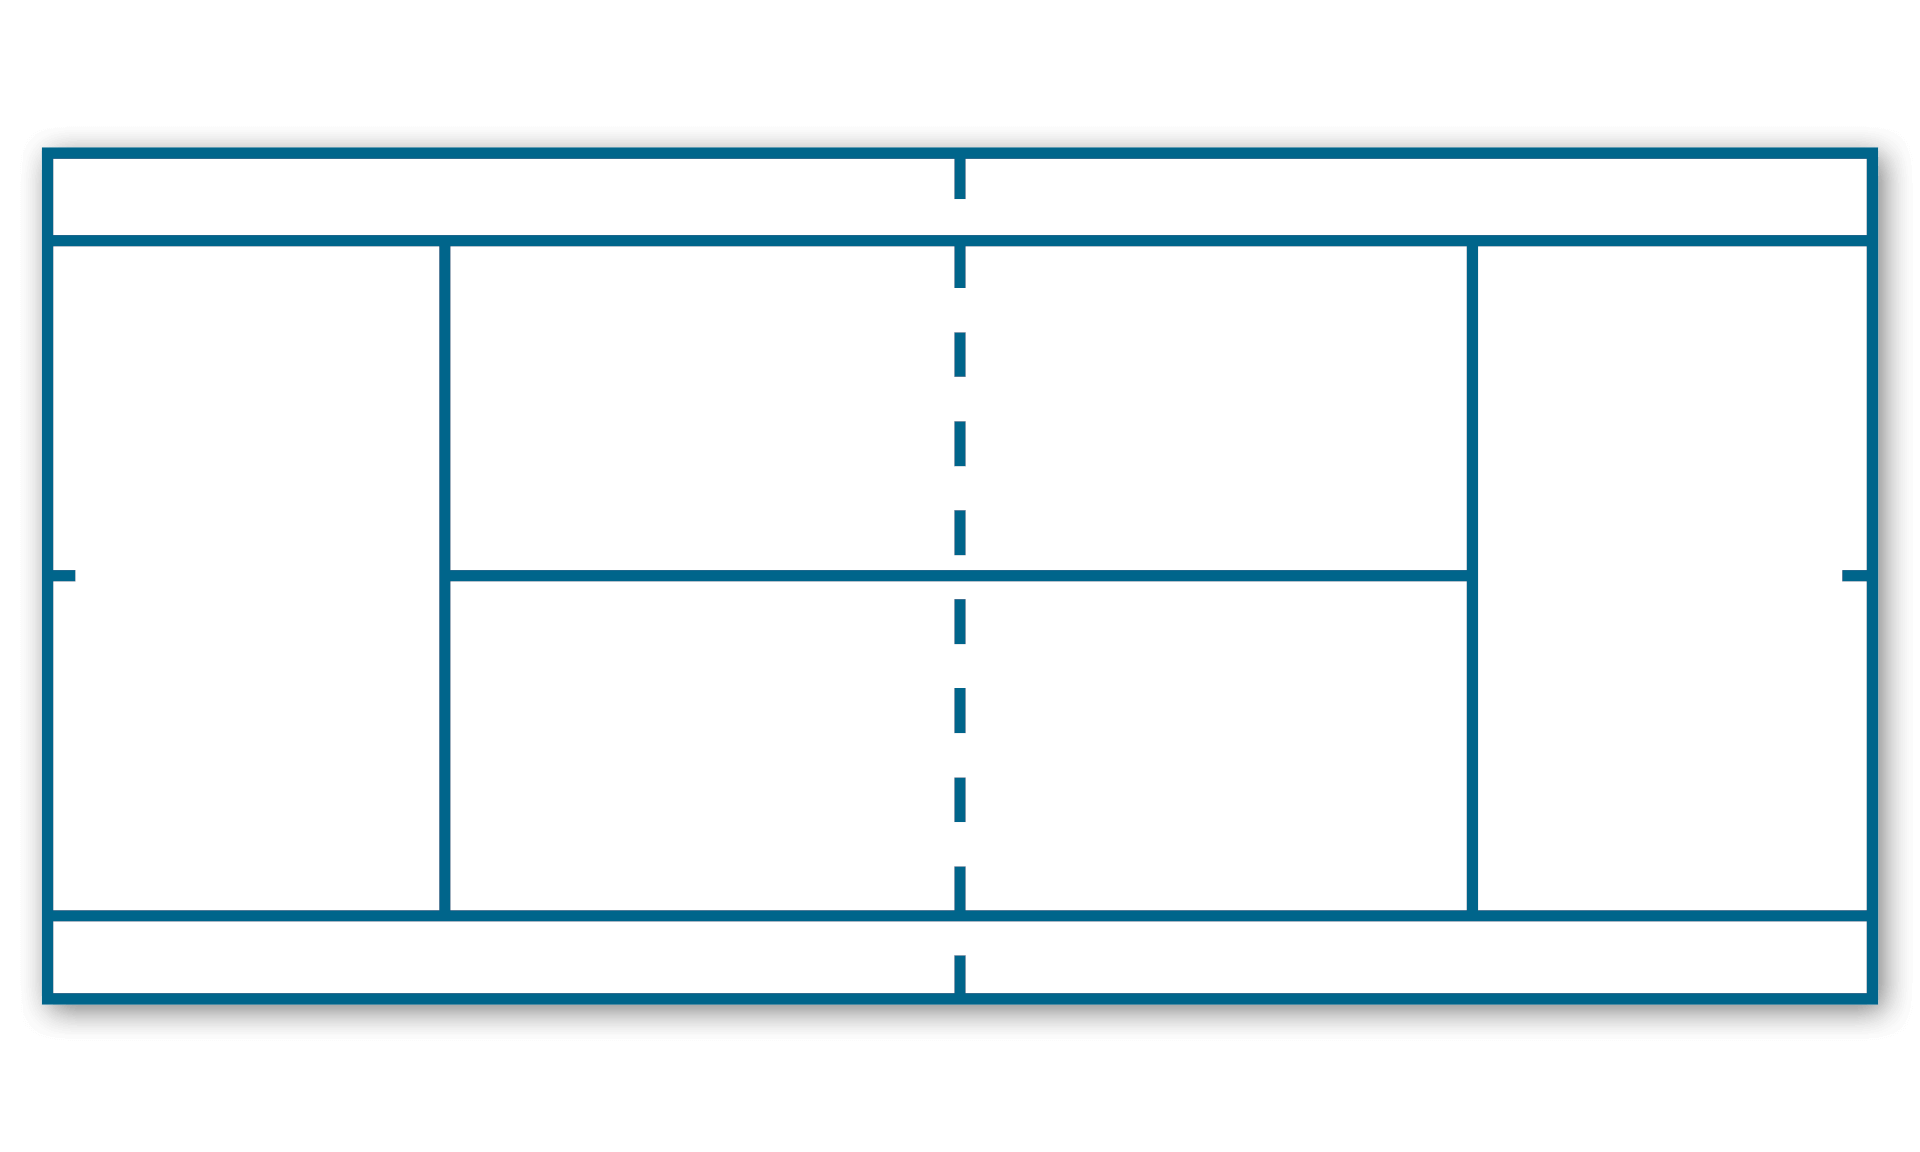 Example of tennis court layout with automatic line marking